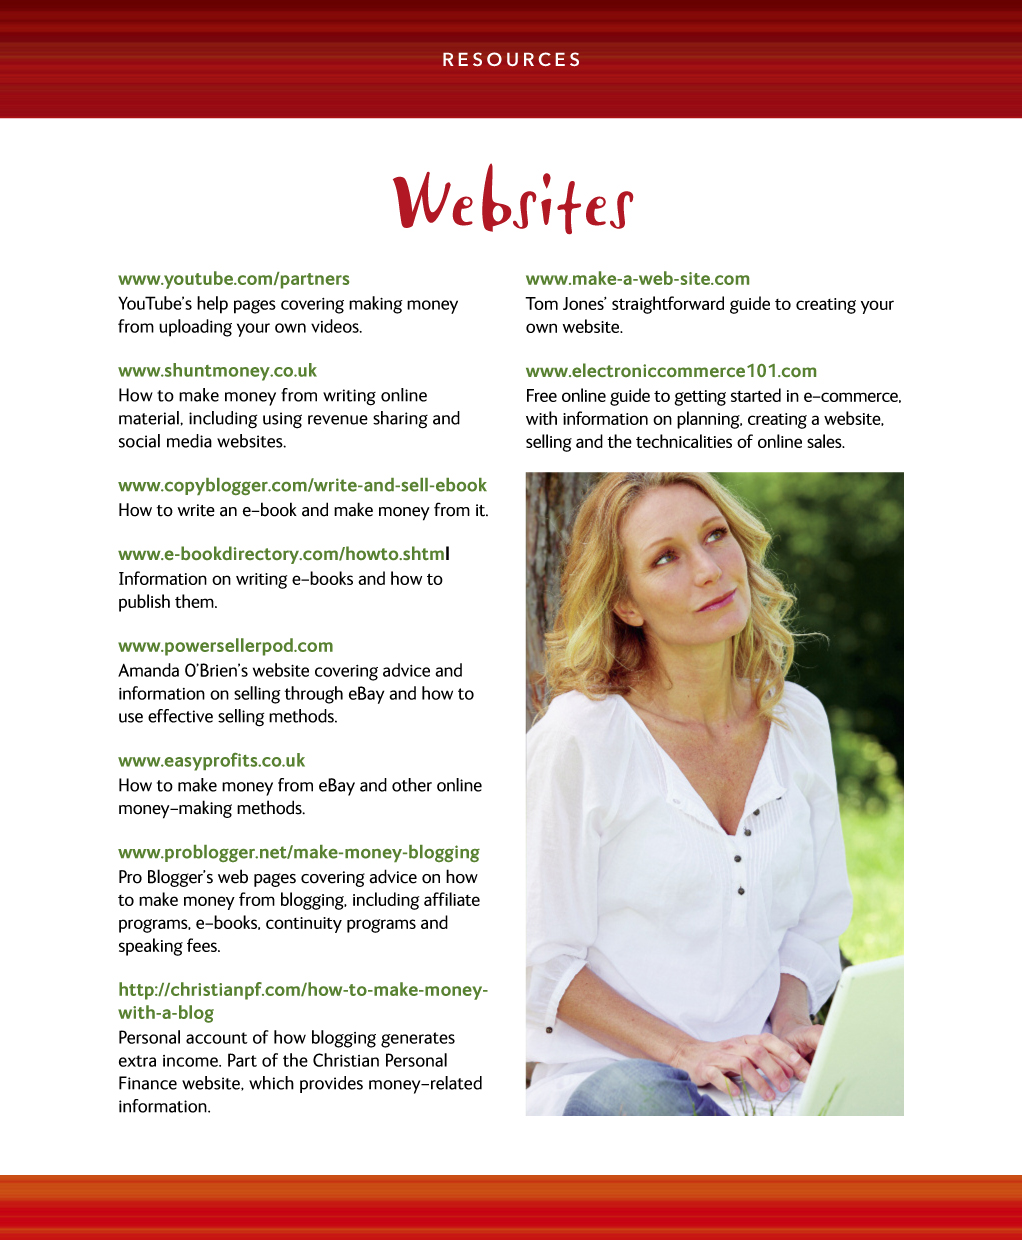 How to Make Money from Your Website. Expert Advice Made Easy inside page 04